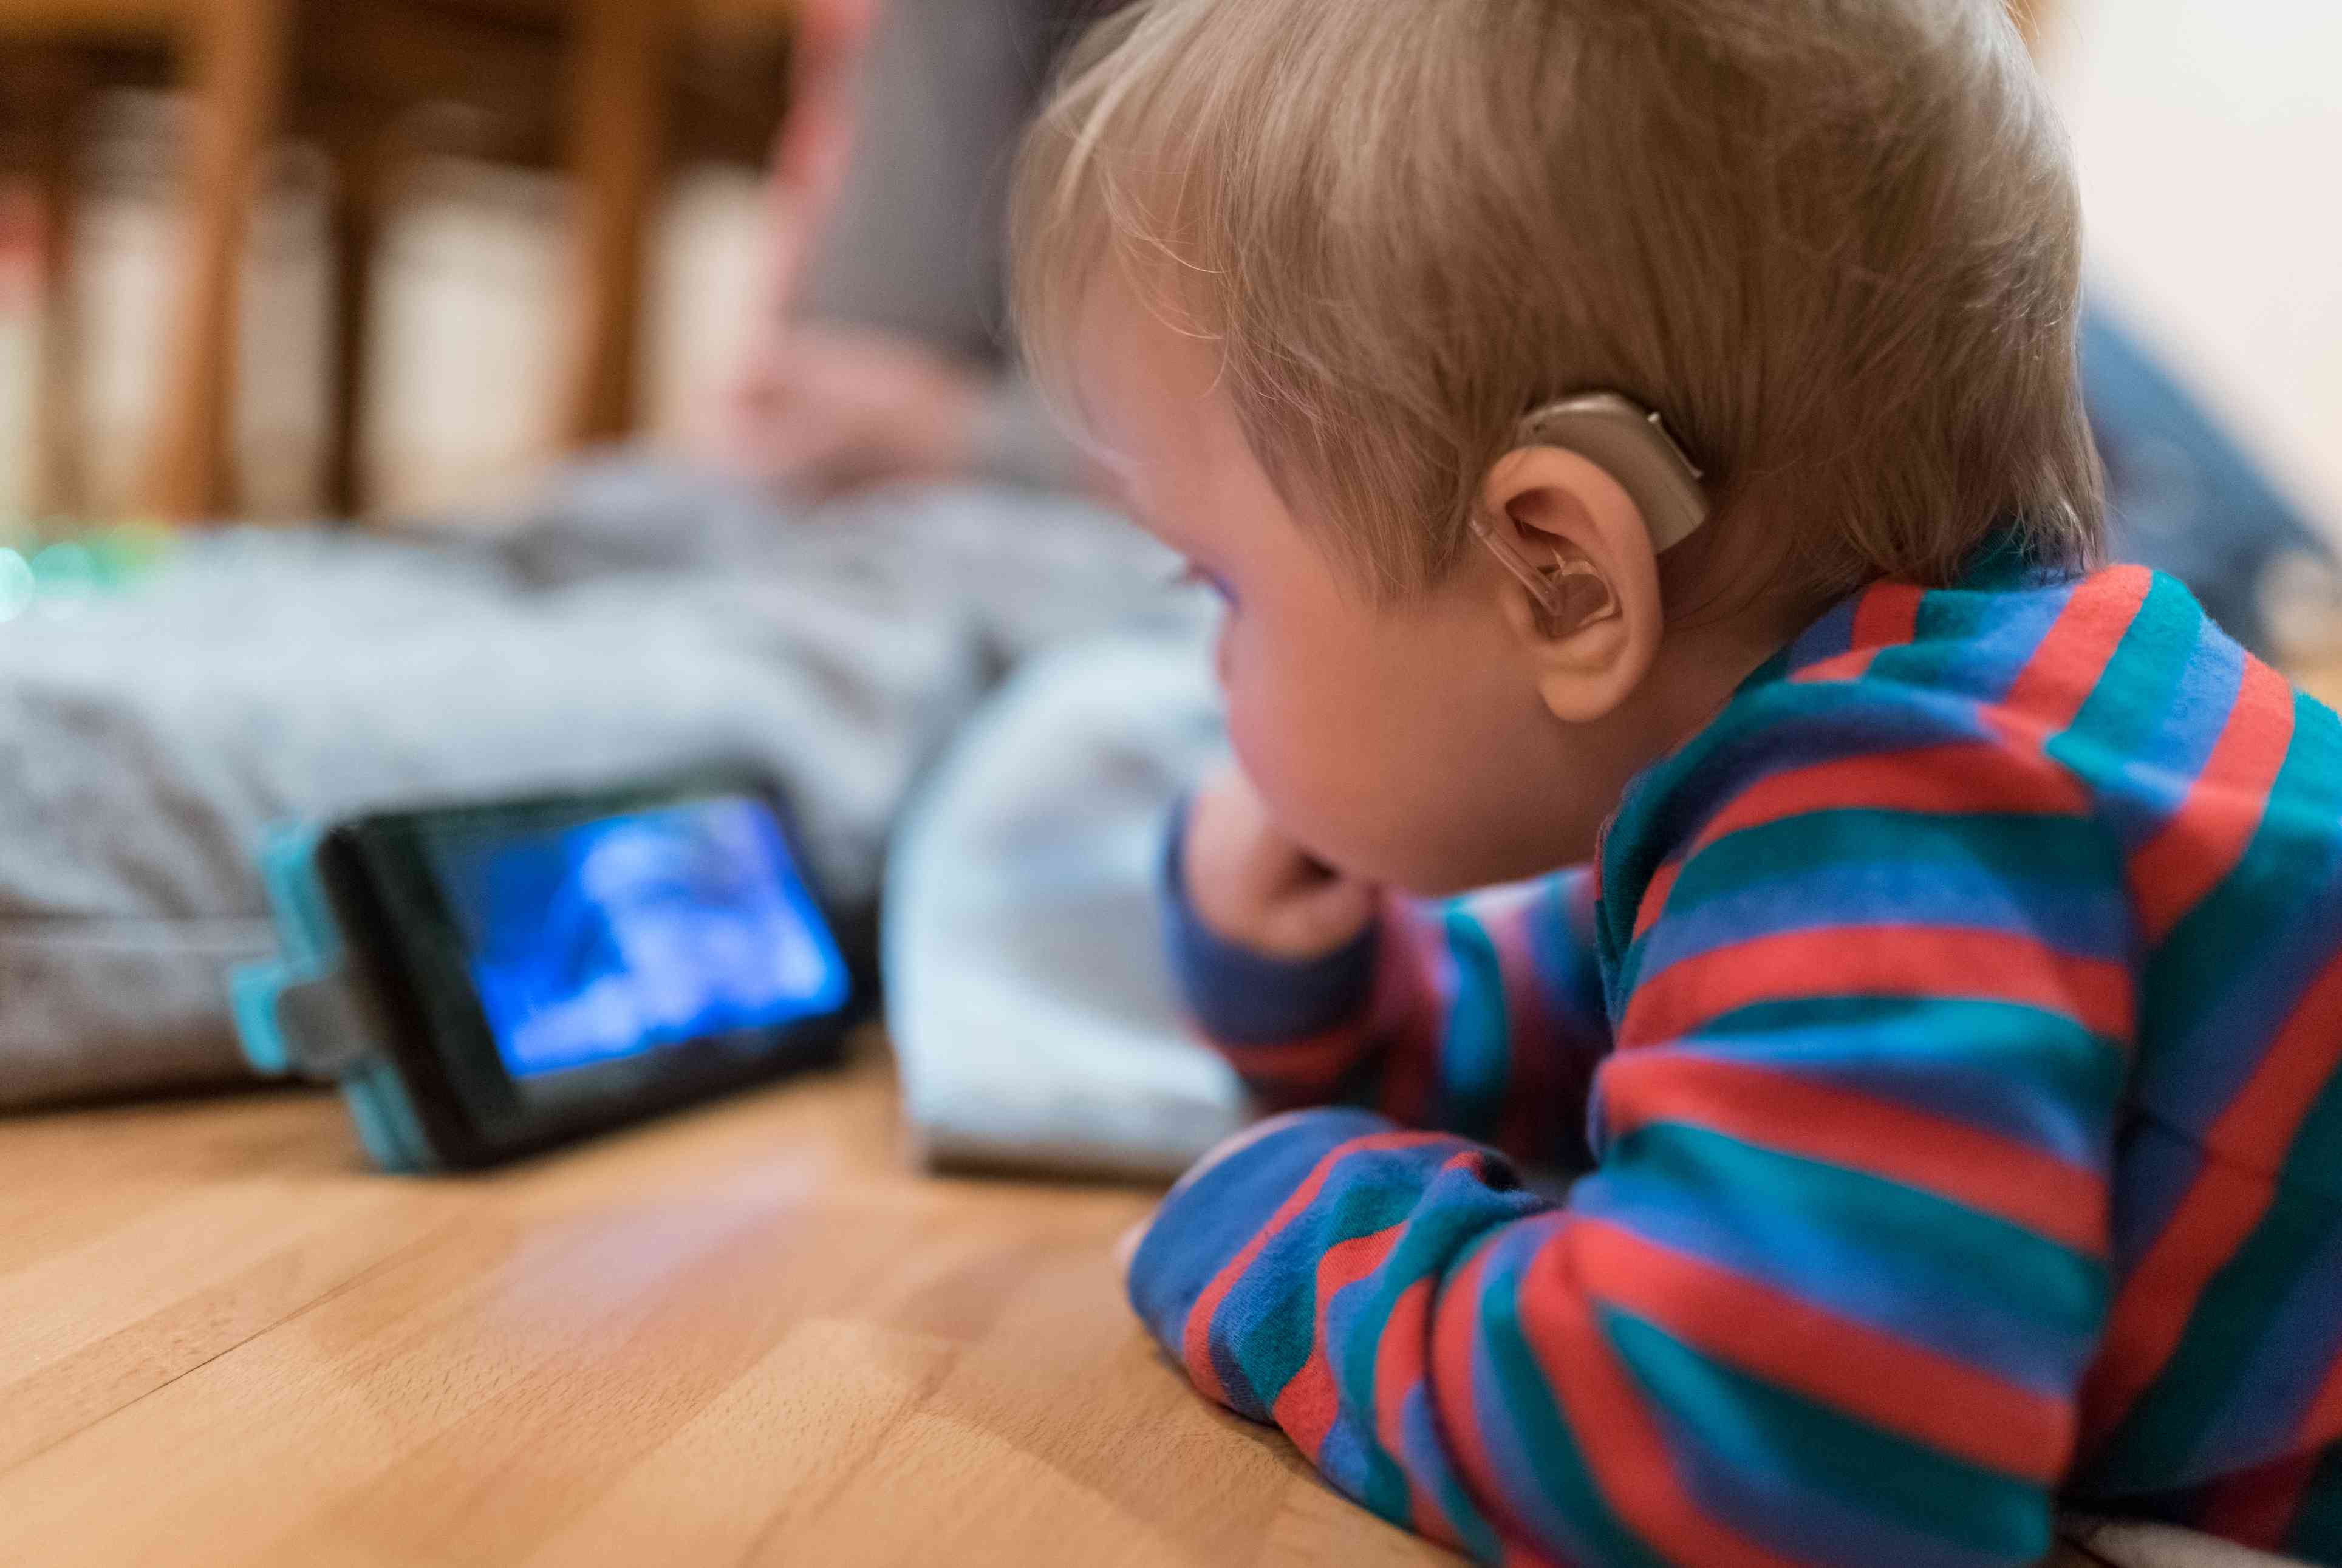 baby with a hearing aid playing with an ipad